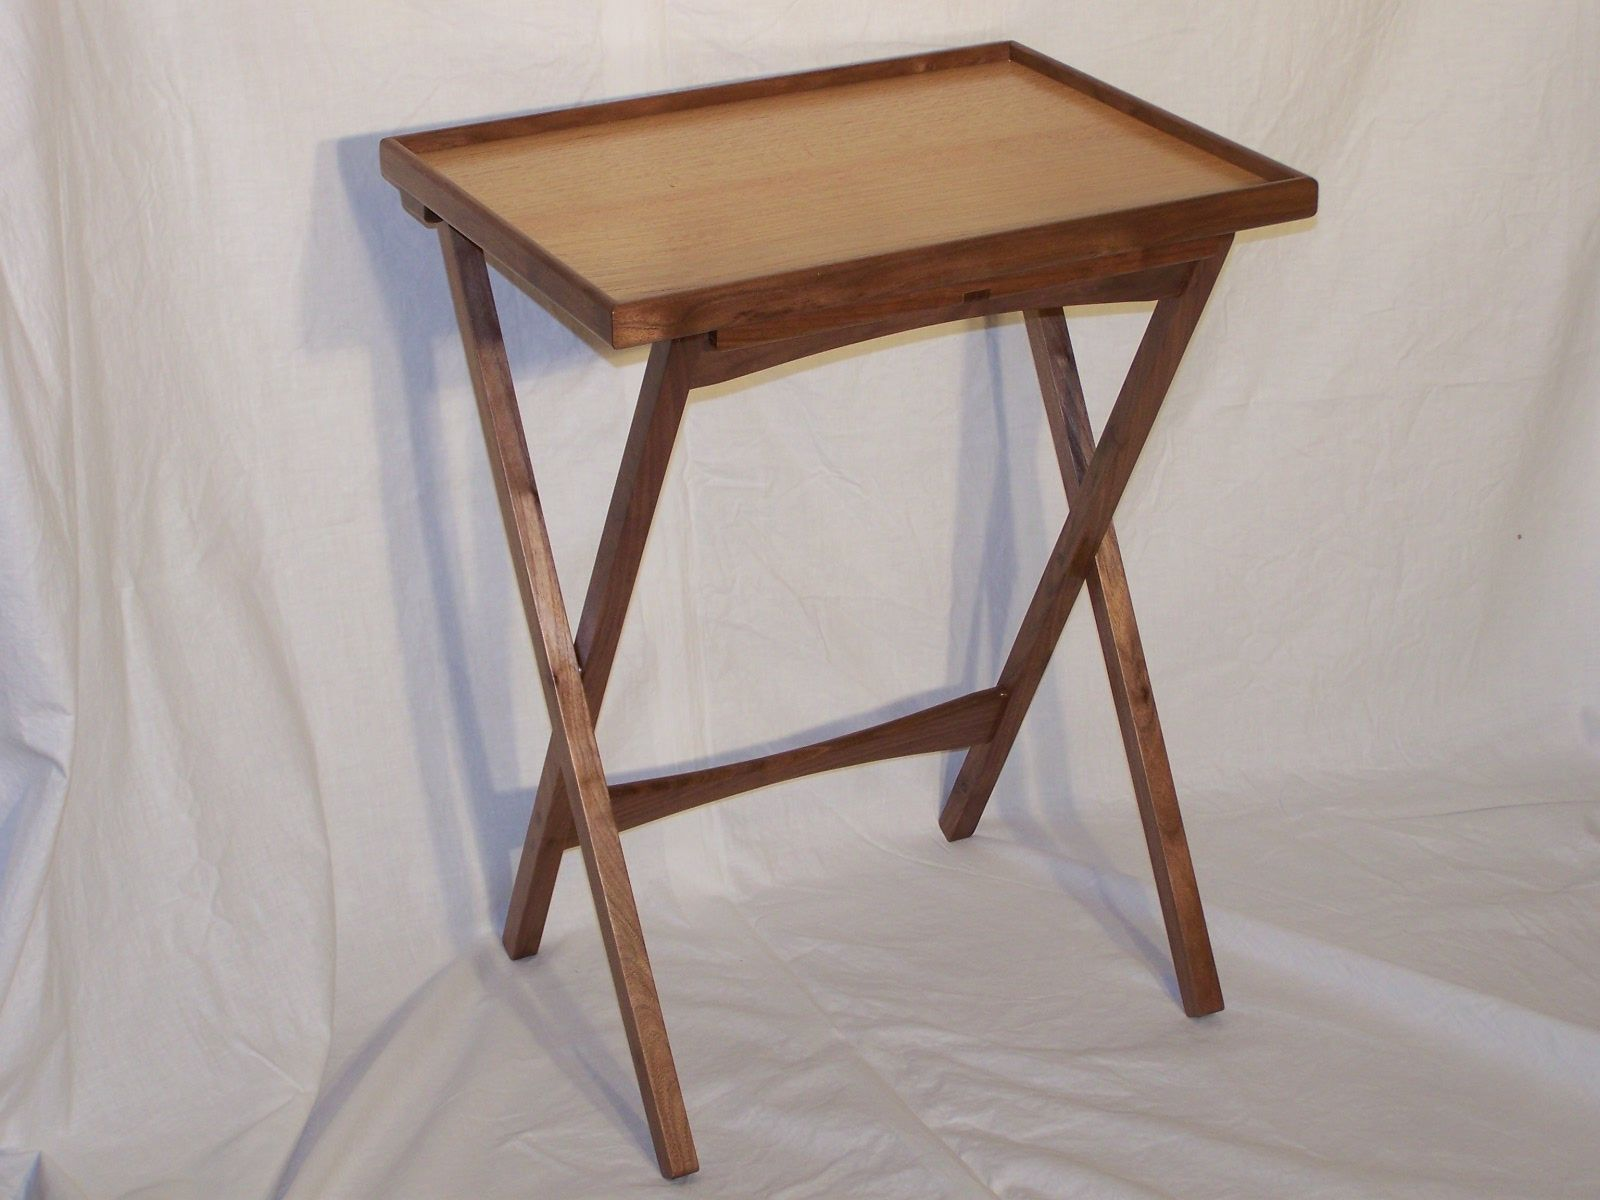 Folding Tv Tray Tables Woodworking For Proportions 1600 X 1200 Table With Lip The Traditional Bistro Set Is A Three Piece Wooden Pair Com